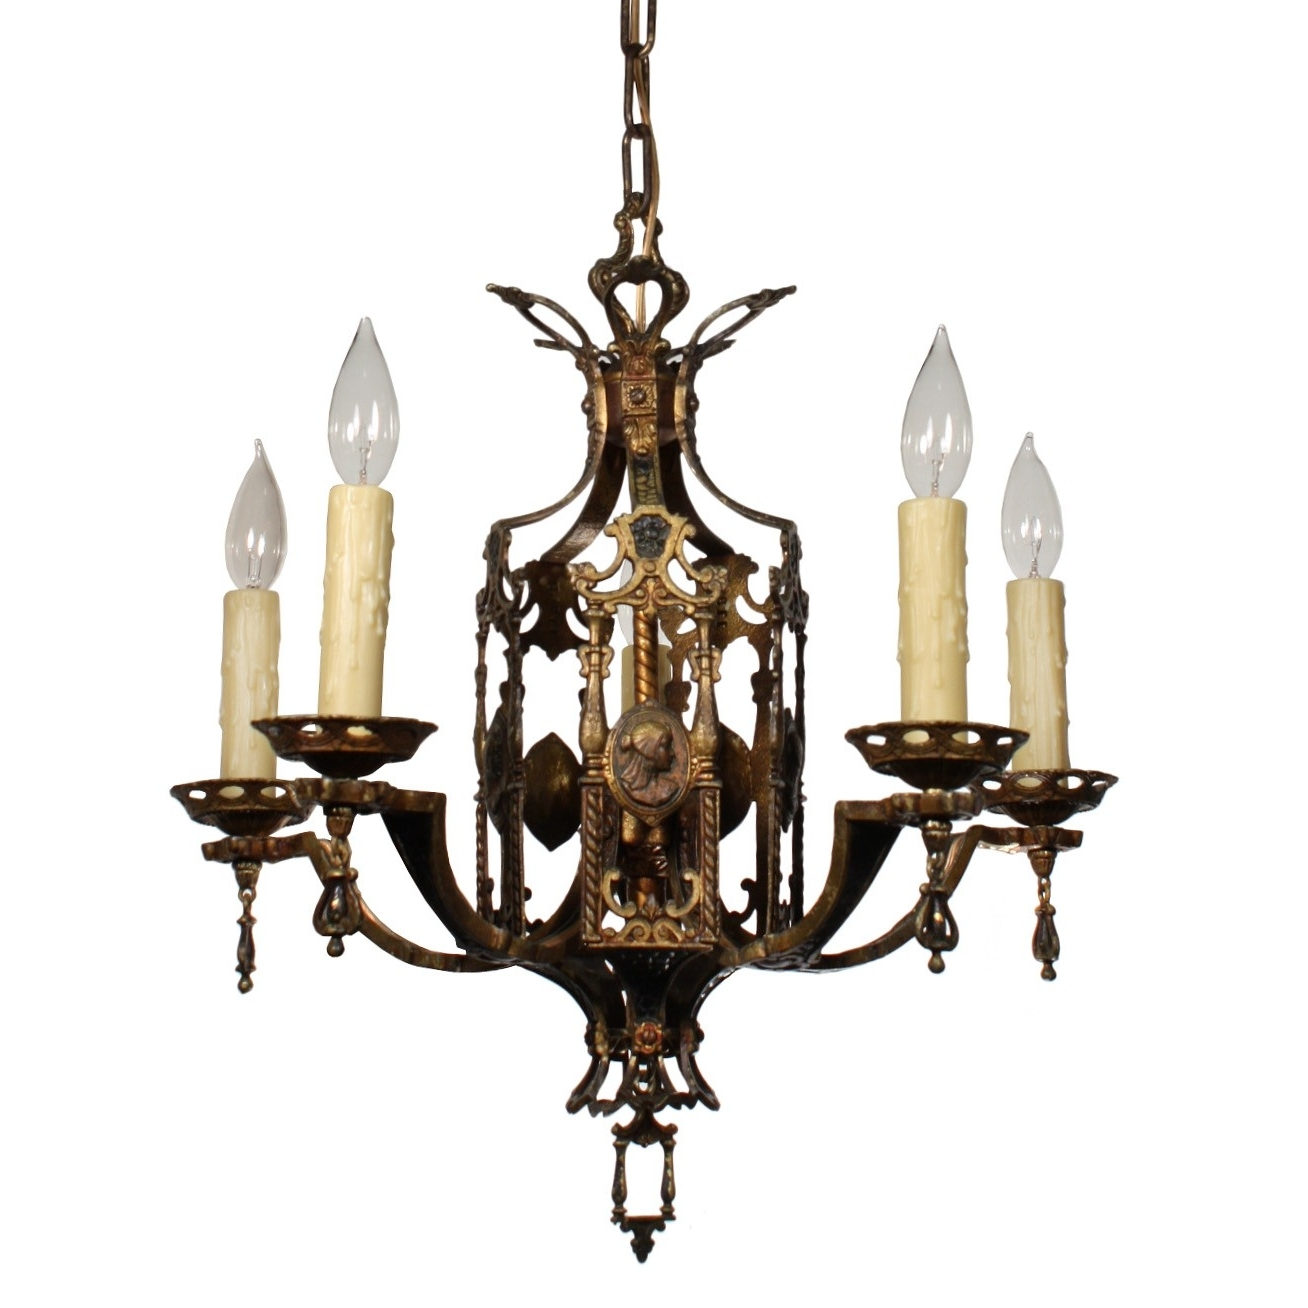 Stunning Antique Egyptian Revival Figural Chandelier With Cameos, C With Regard To Most Recent Egyptian Chandelier (View 16 of 20)